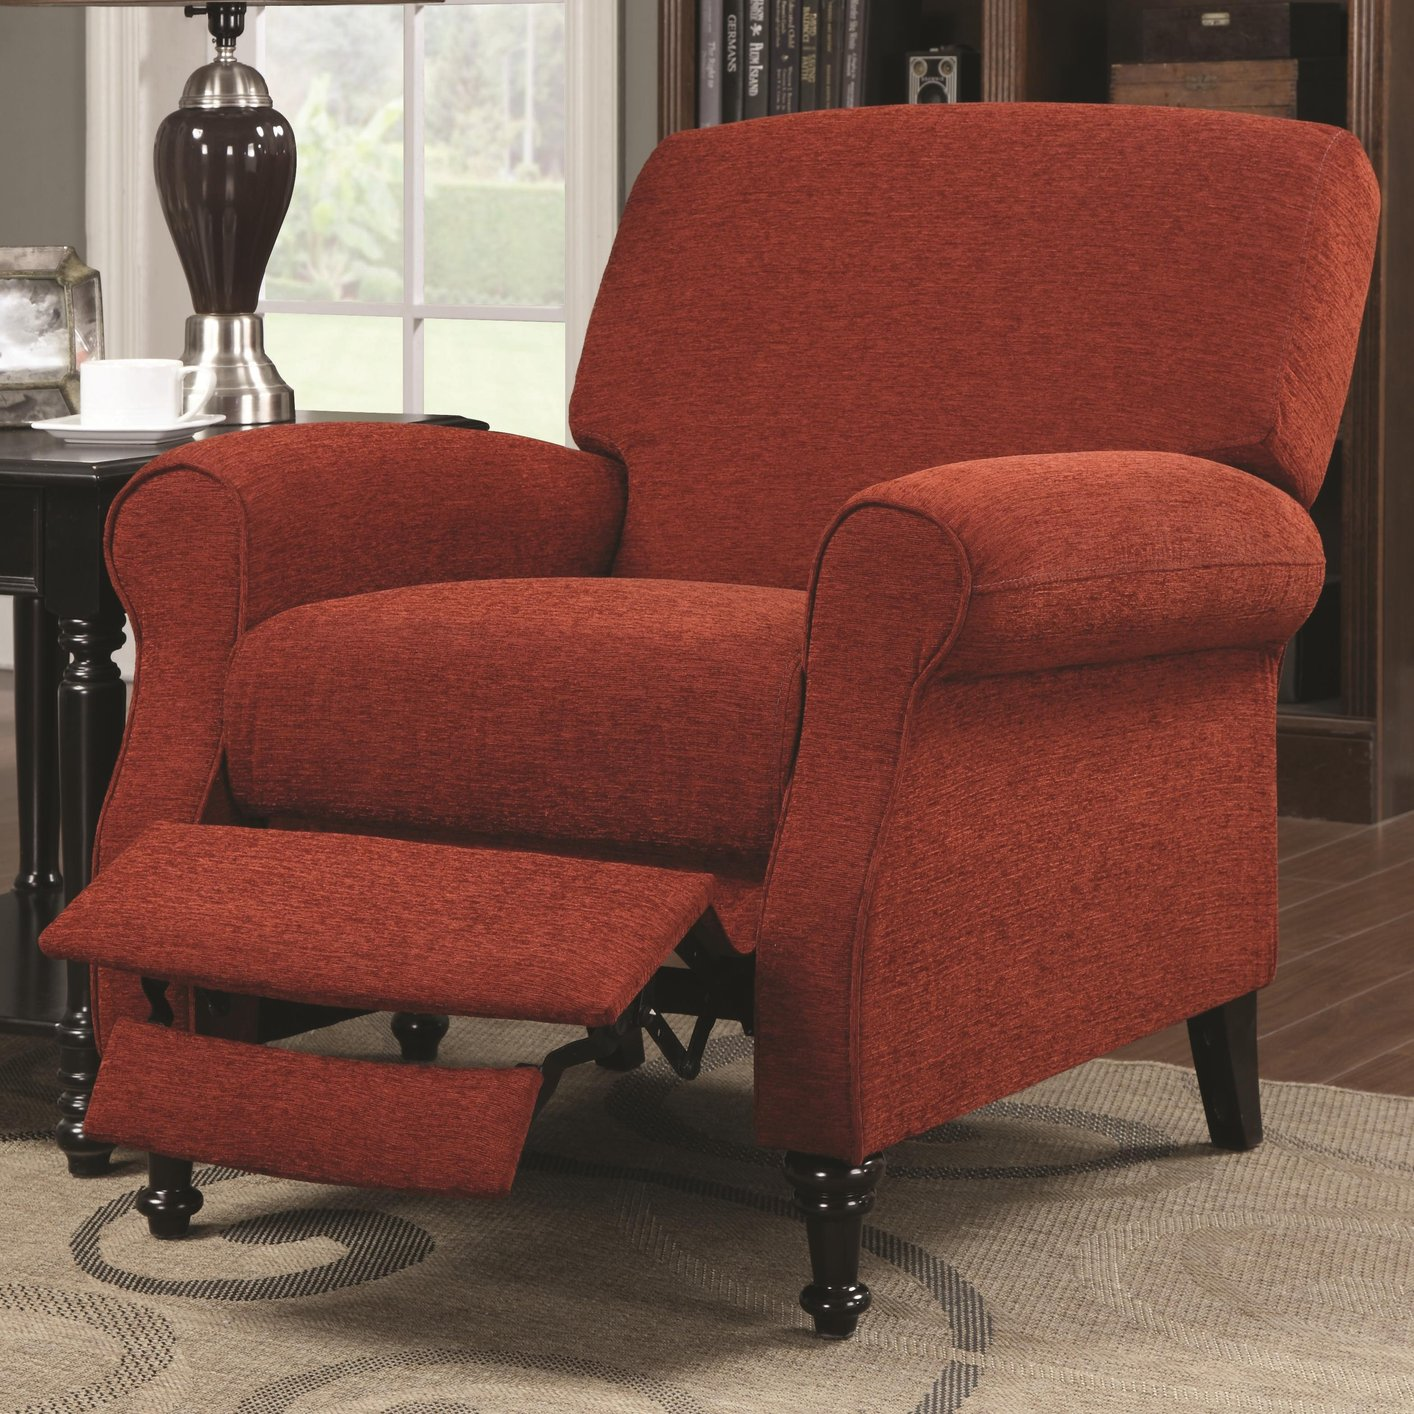 Superieur Red Fabric Reclining Chair